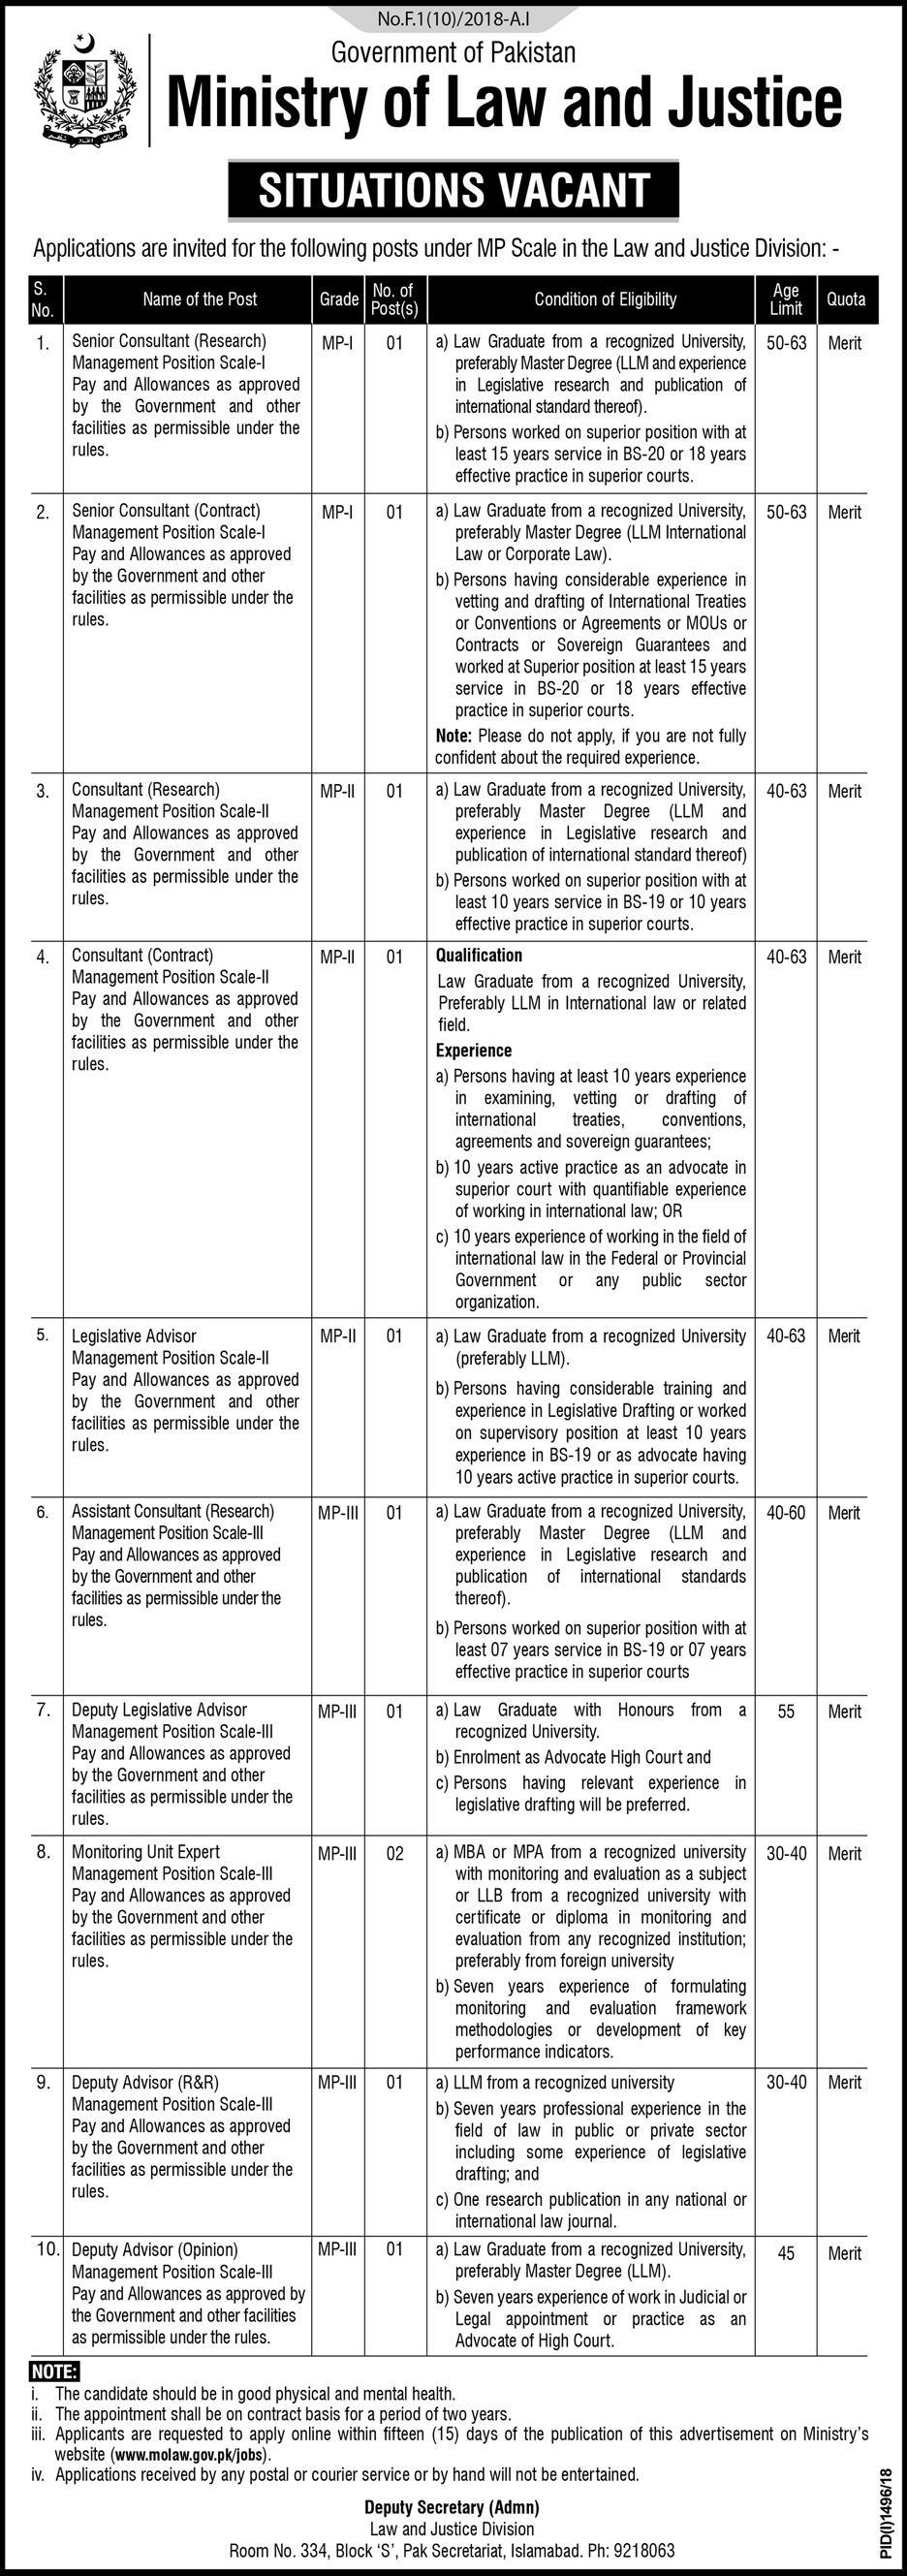 Ministry of Law and Justice Government of Pakistan Jobs 2018